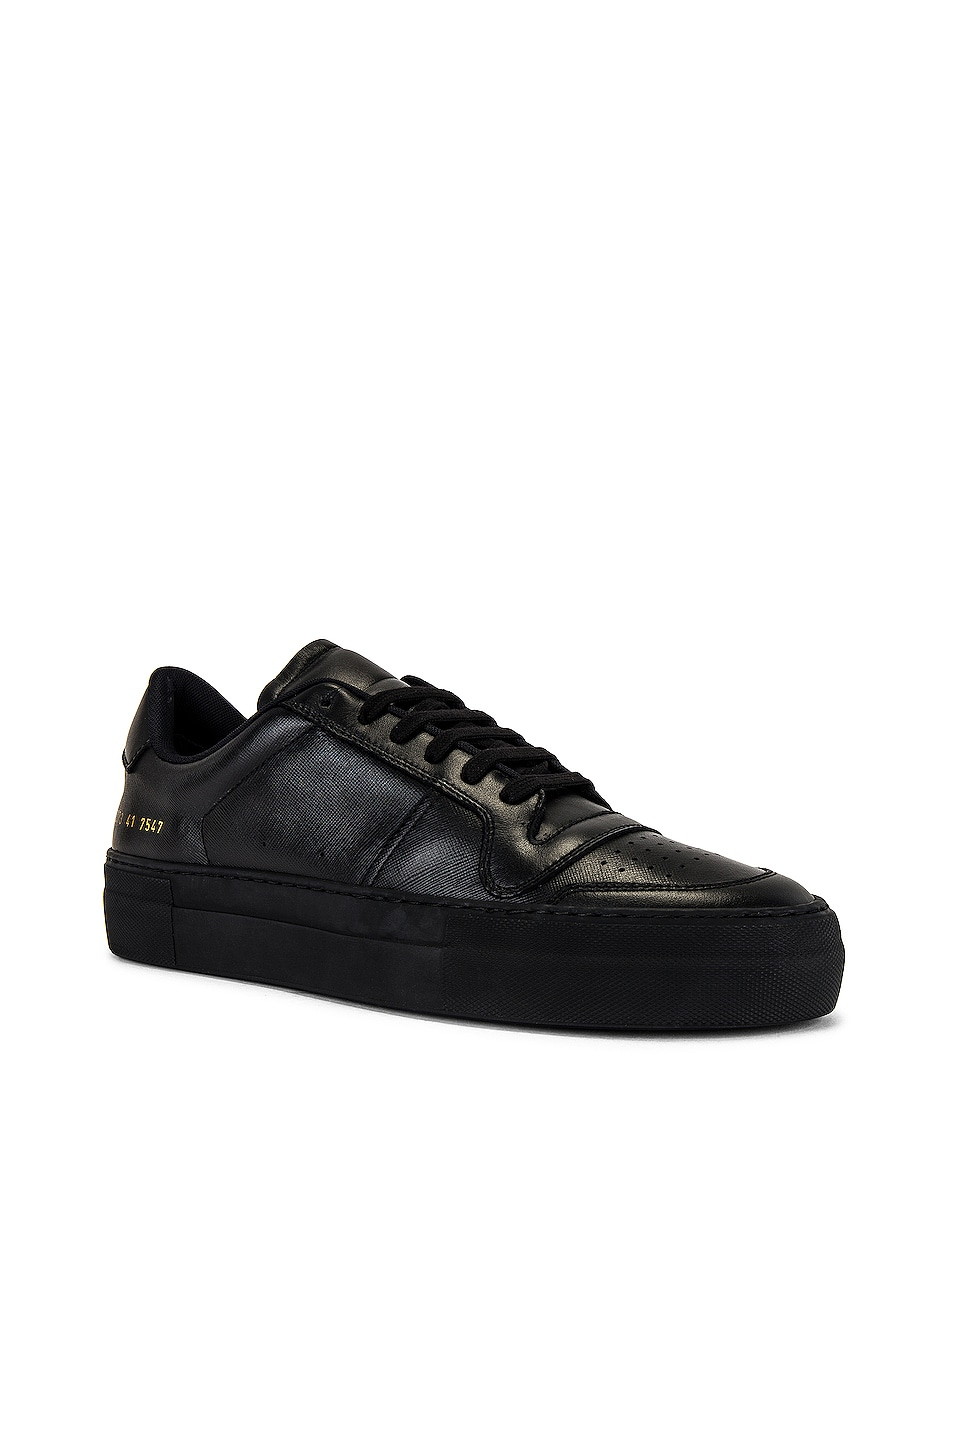 Image 1 of Common Projects Full Court Saffiano Low Top Sneaker in Black